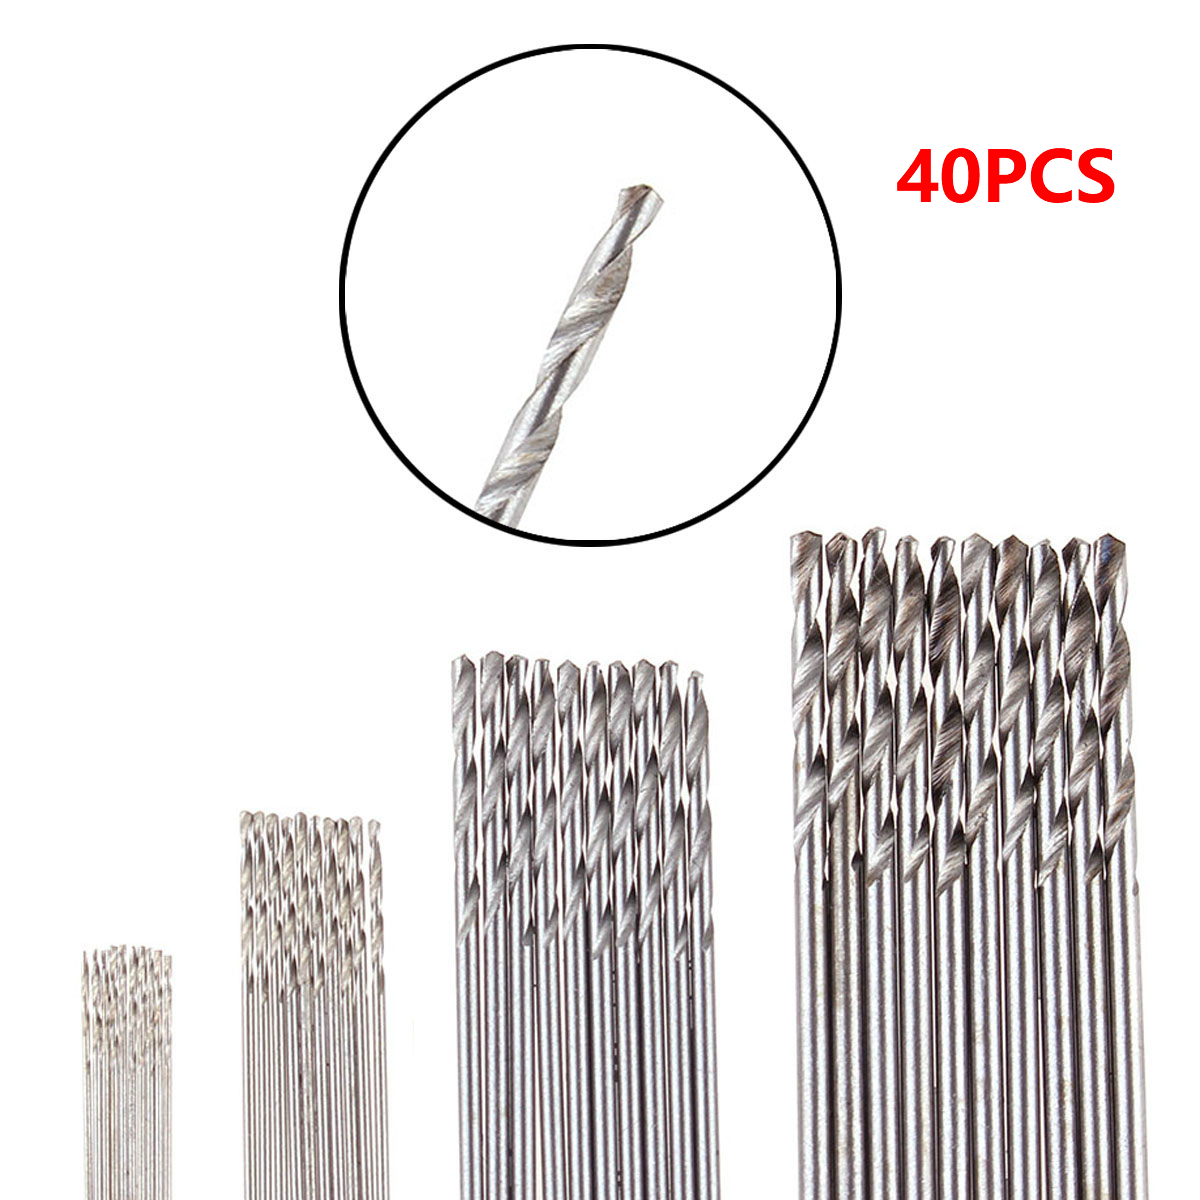 40Pcs/Set 0.5mm 0.8mm 1.5mm 2.0mm HSS Mini Drill Twist Drill Bits Set For Woodworking Plastic And Aluminum